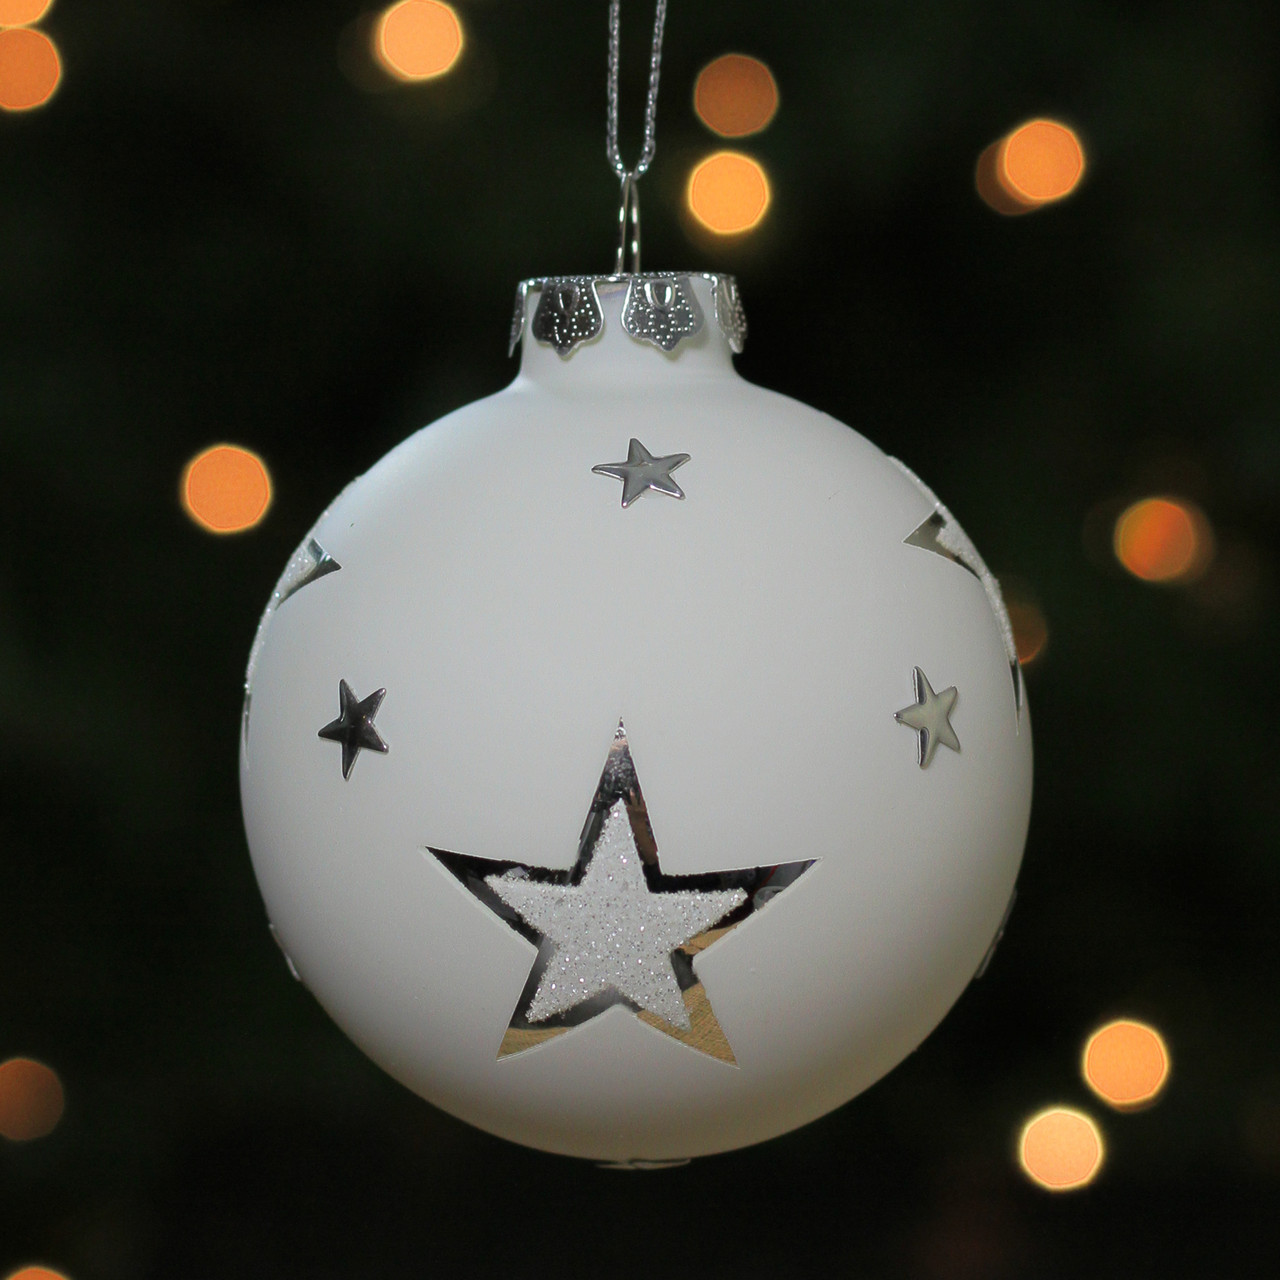 3 25 White And Silver Star Glass Ball Christmas Ornament 32621870